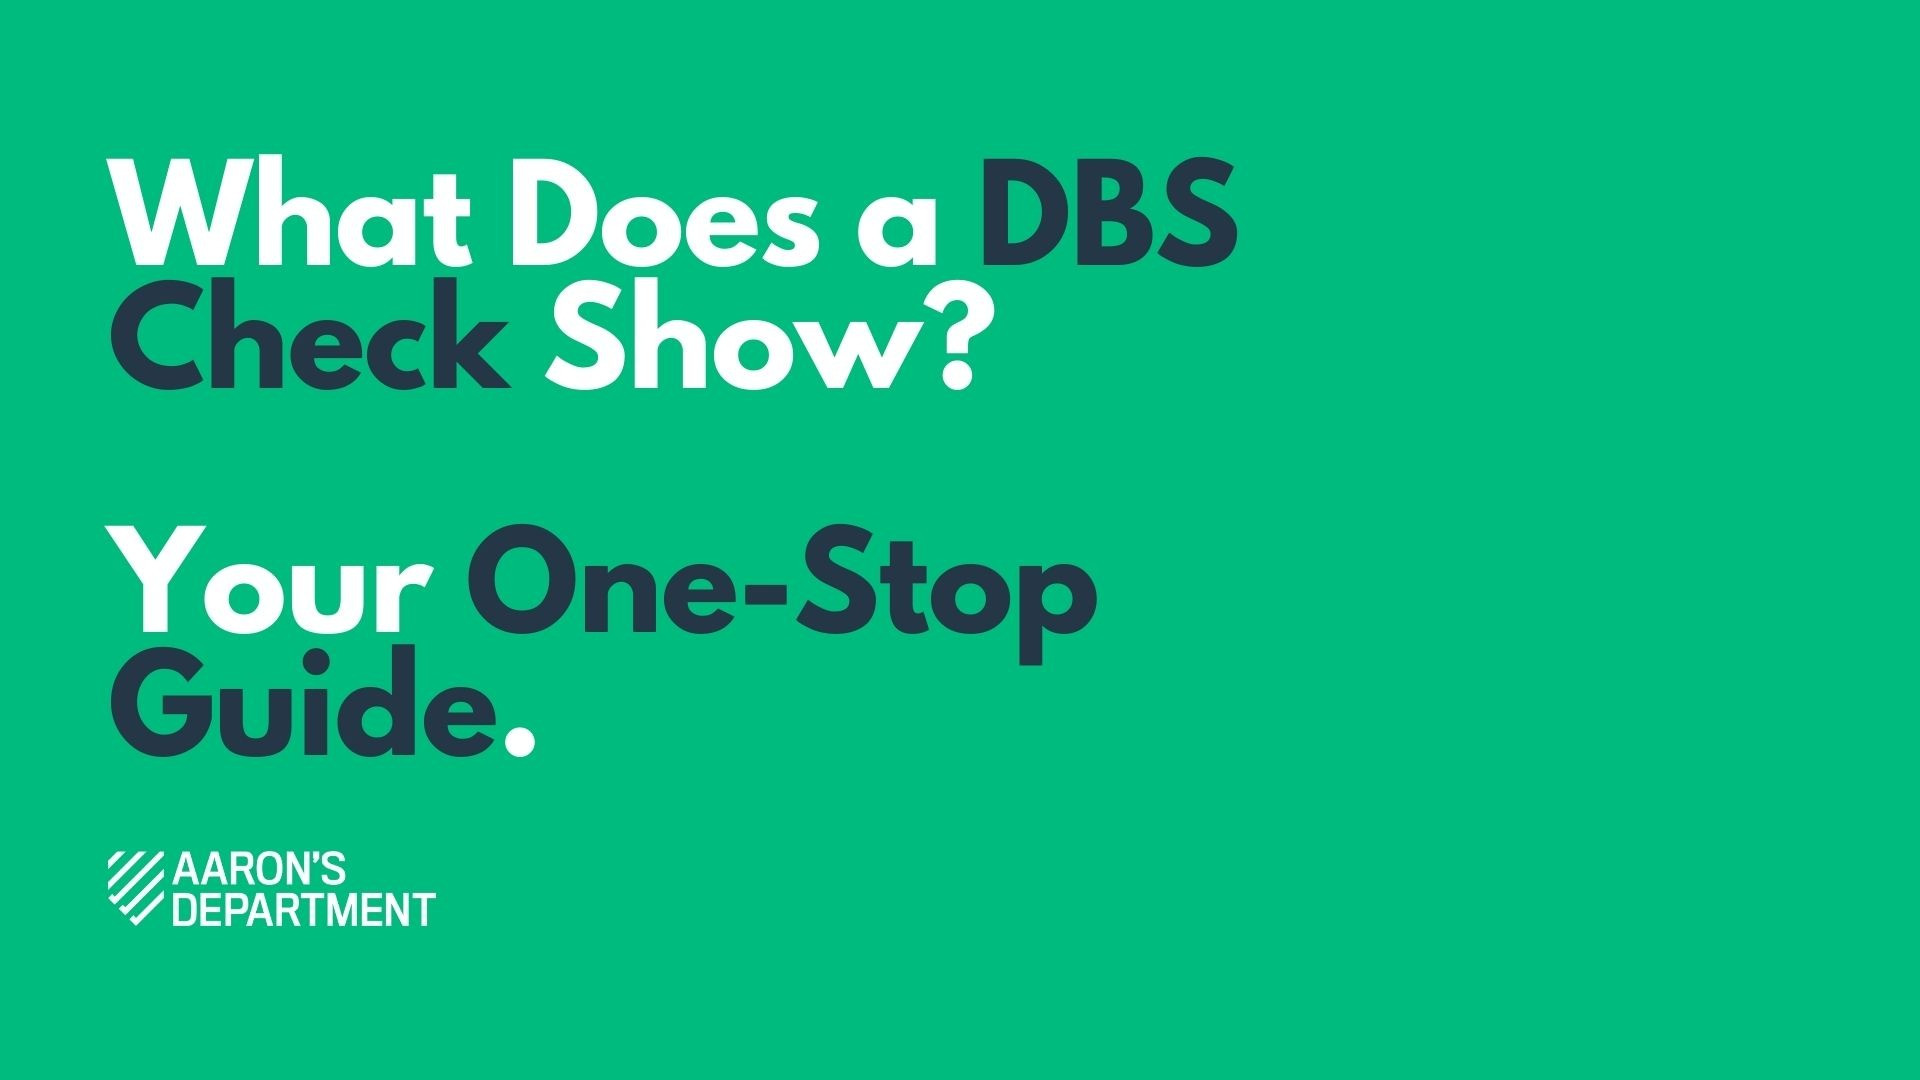 what does a dbs check show?